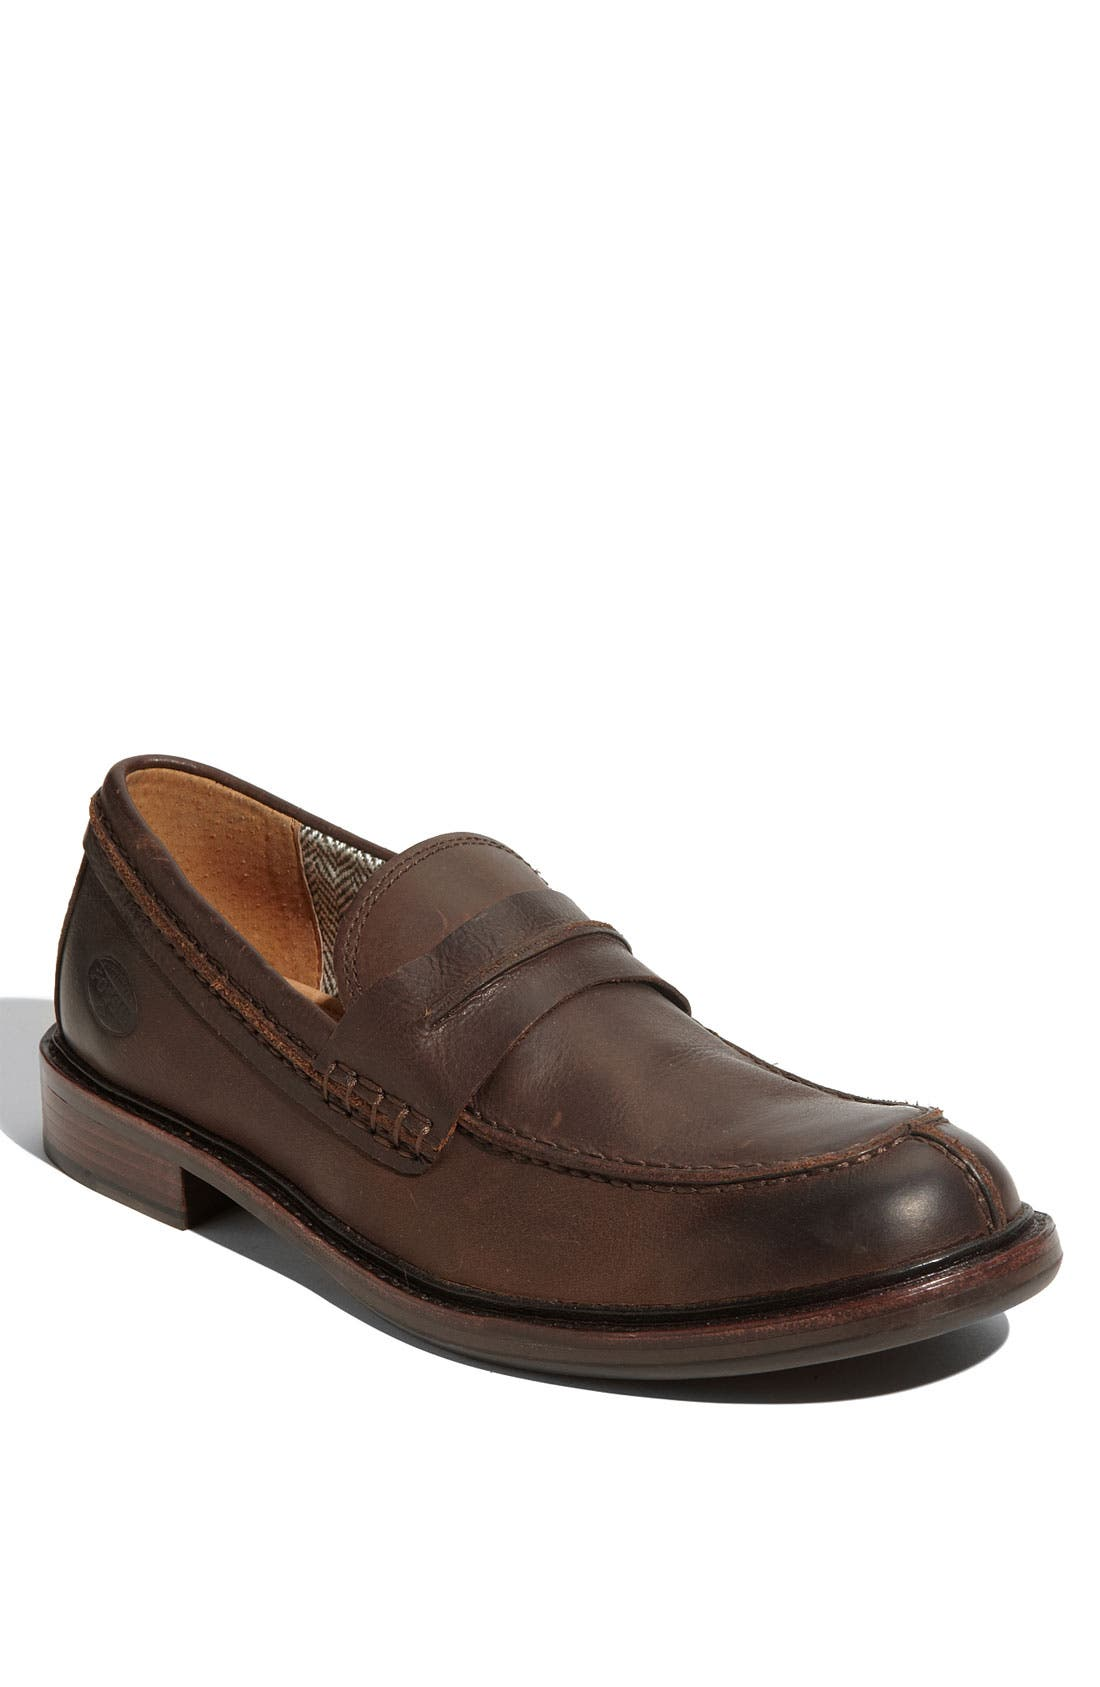 Alternate Image 1 Selected - Fossil 'Jarred' Loafer